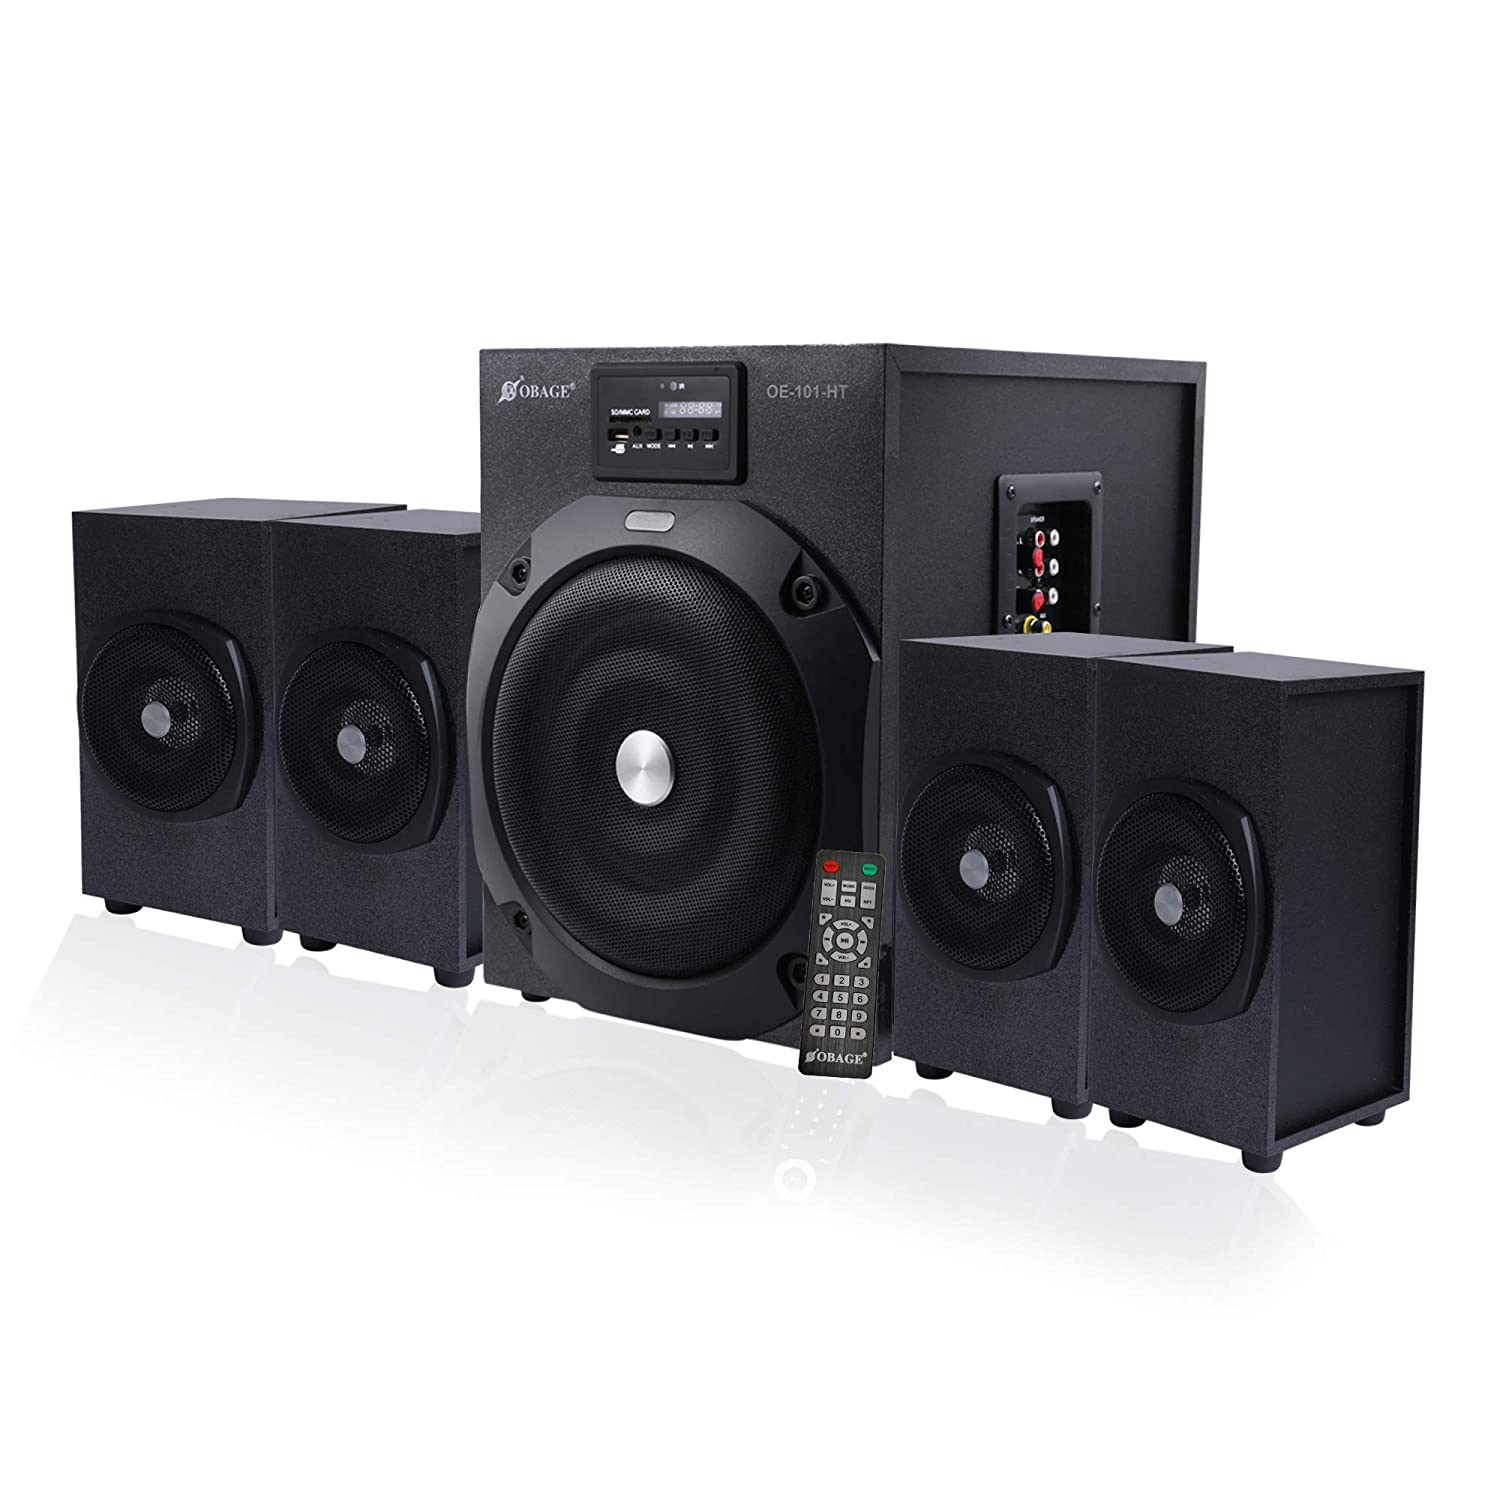 OBAGE HT-101 4.1 Home Theater Speaker System with